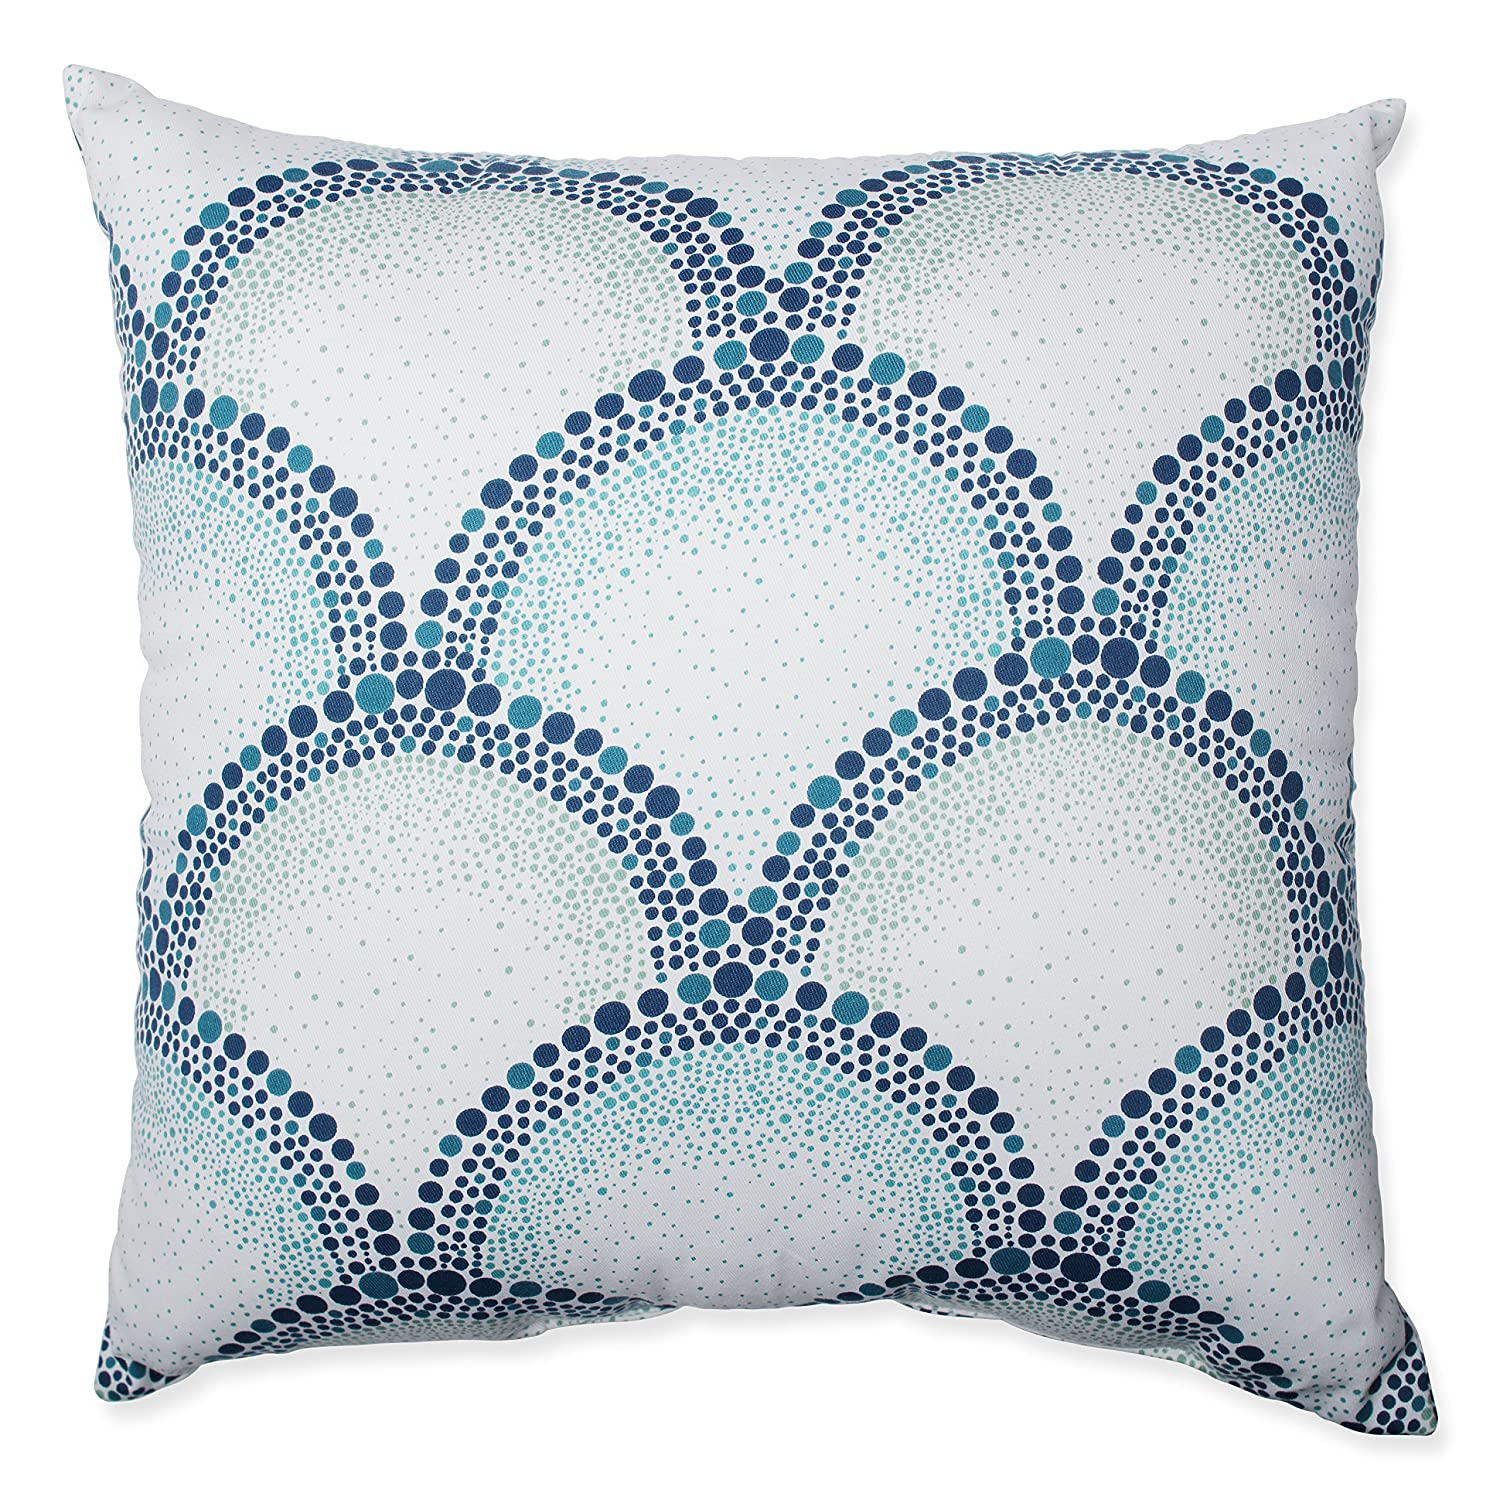 589305 Pillow Perfect Shelamar Teal 24.5-Inch Floor Pillow Inc